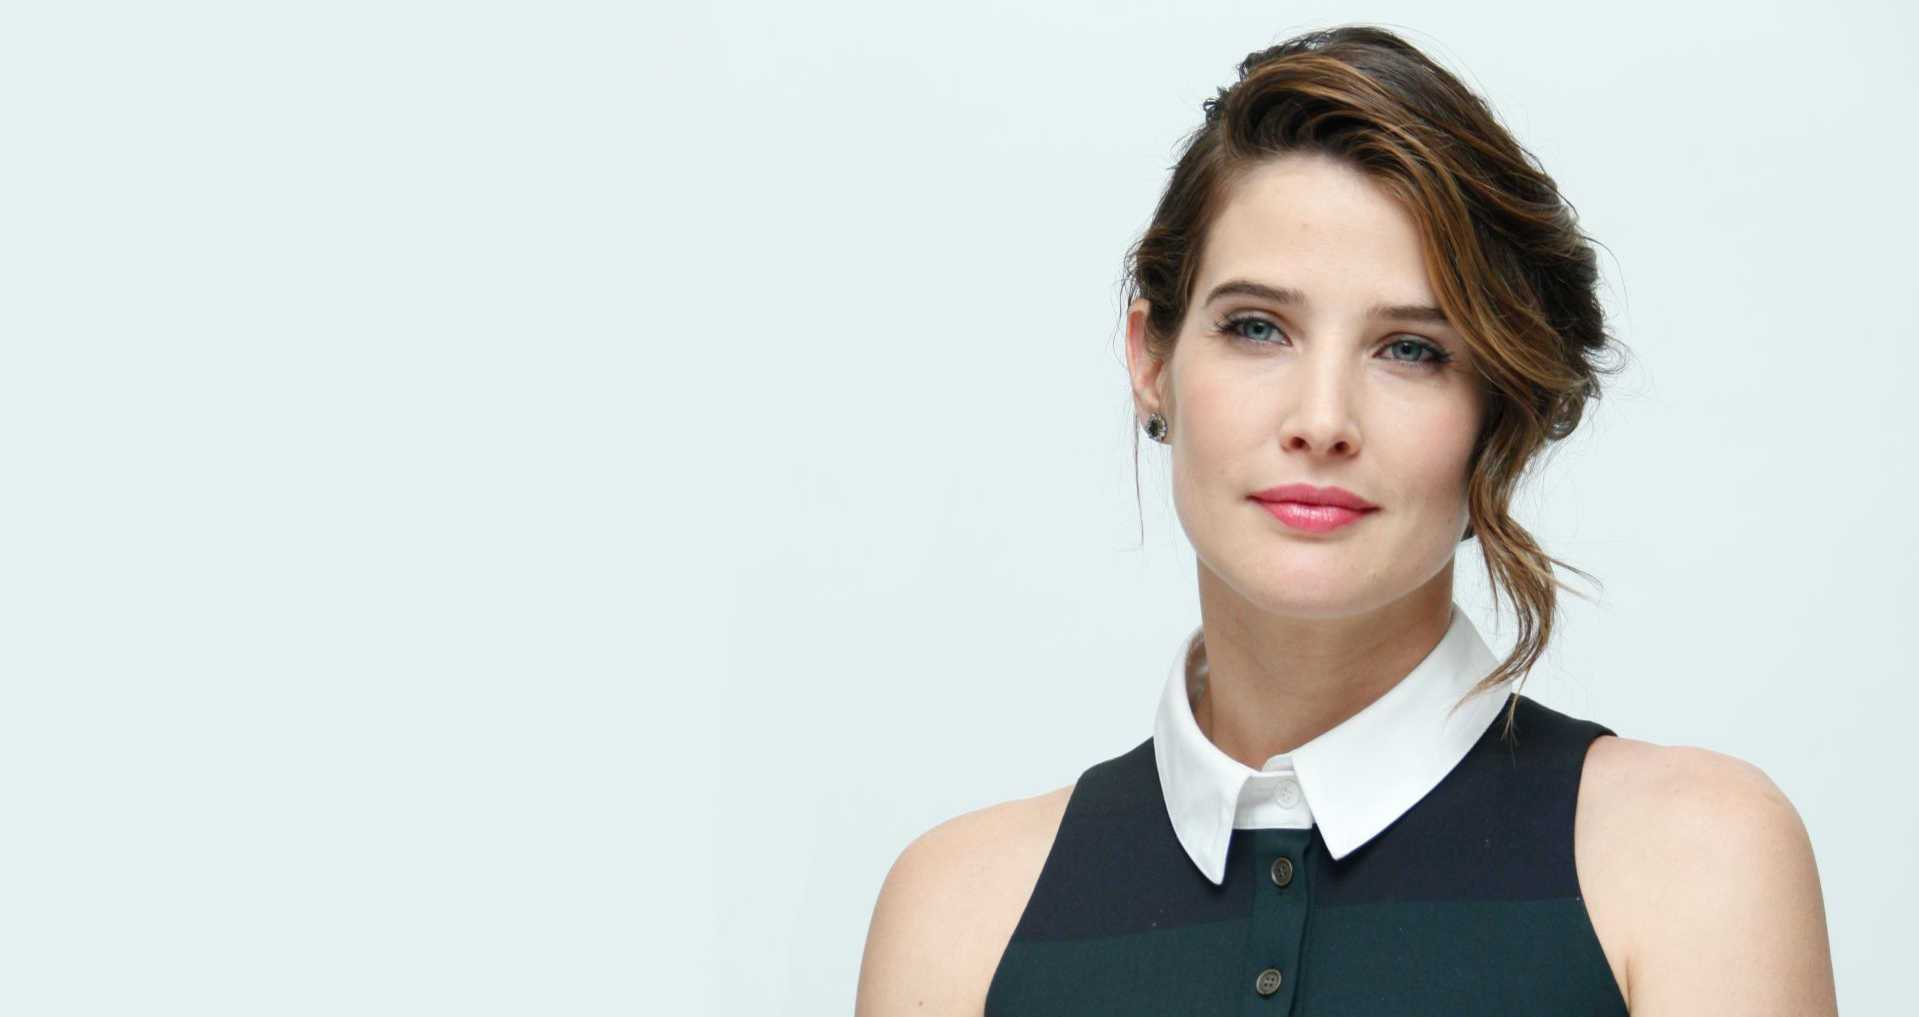 Cobie Smulders Wallpaper HD Download 1919x1017